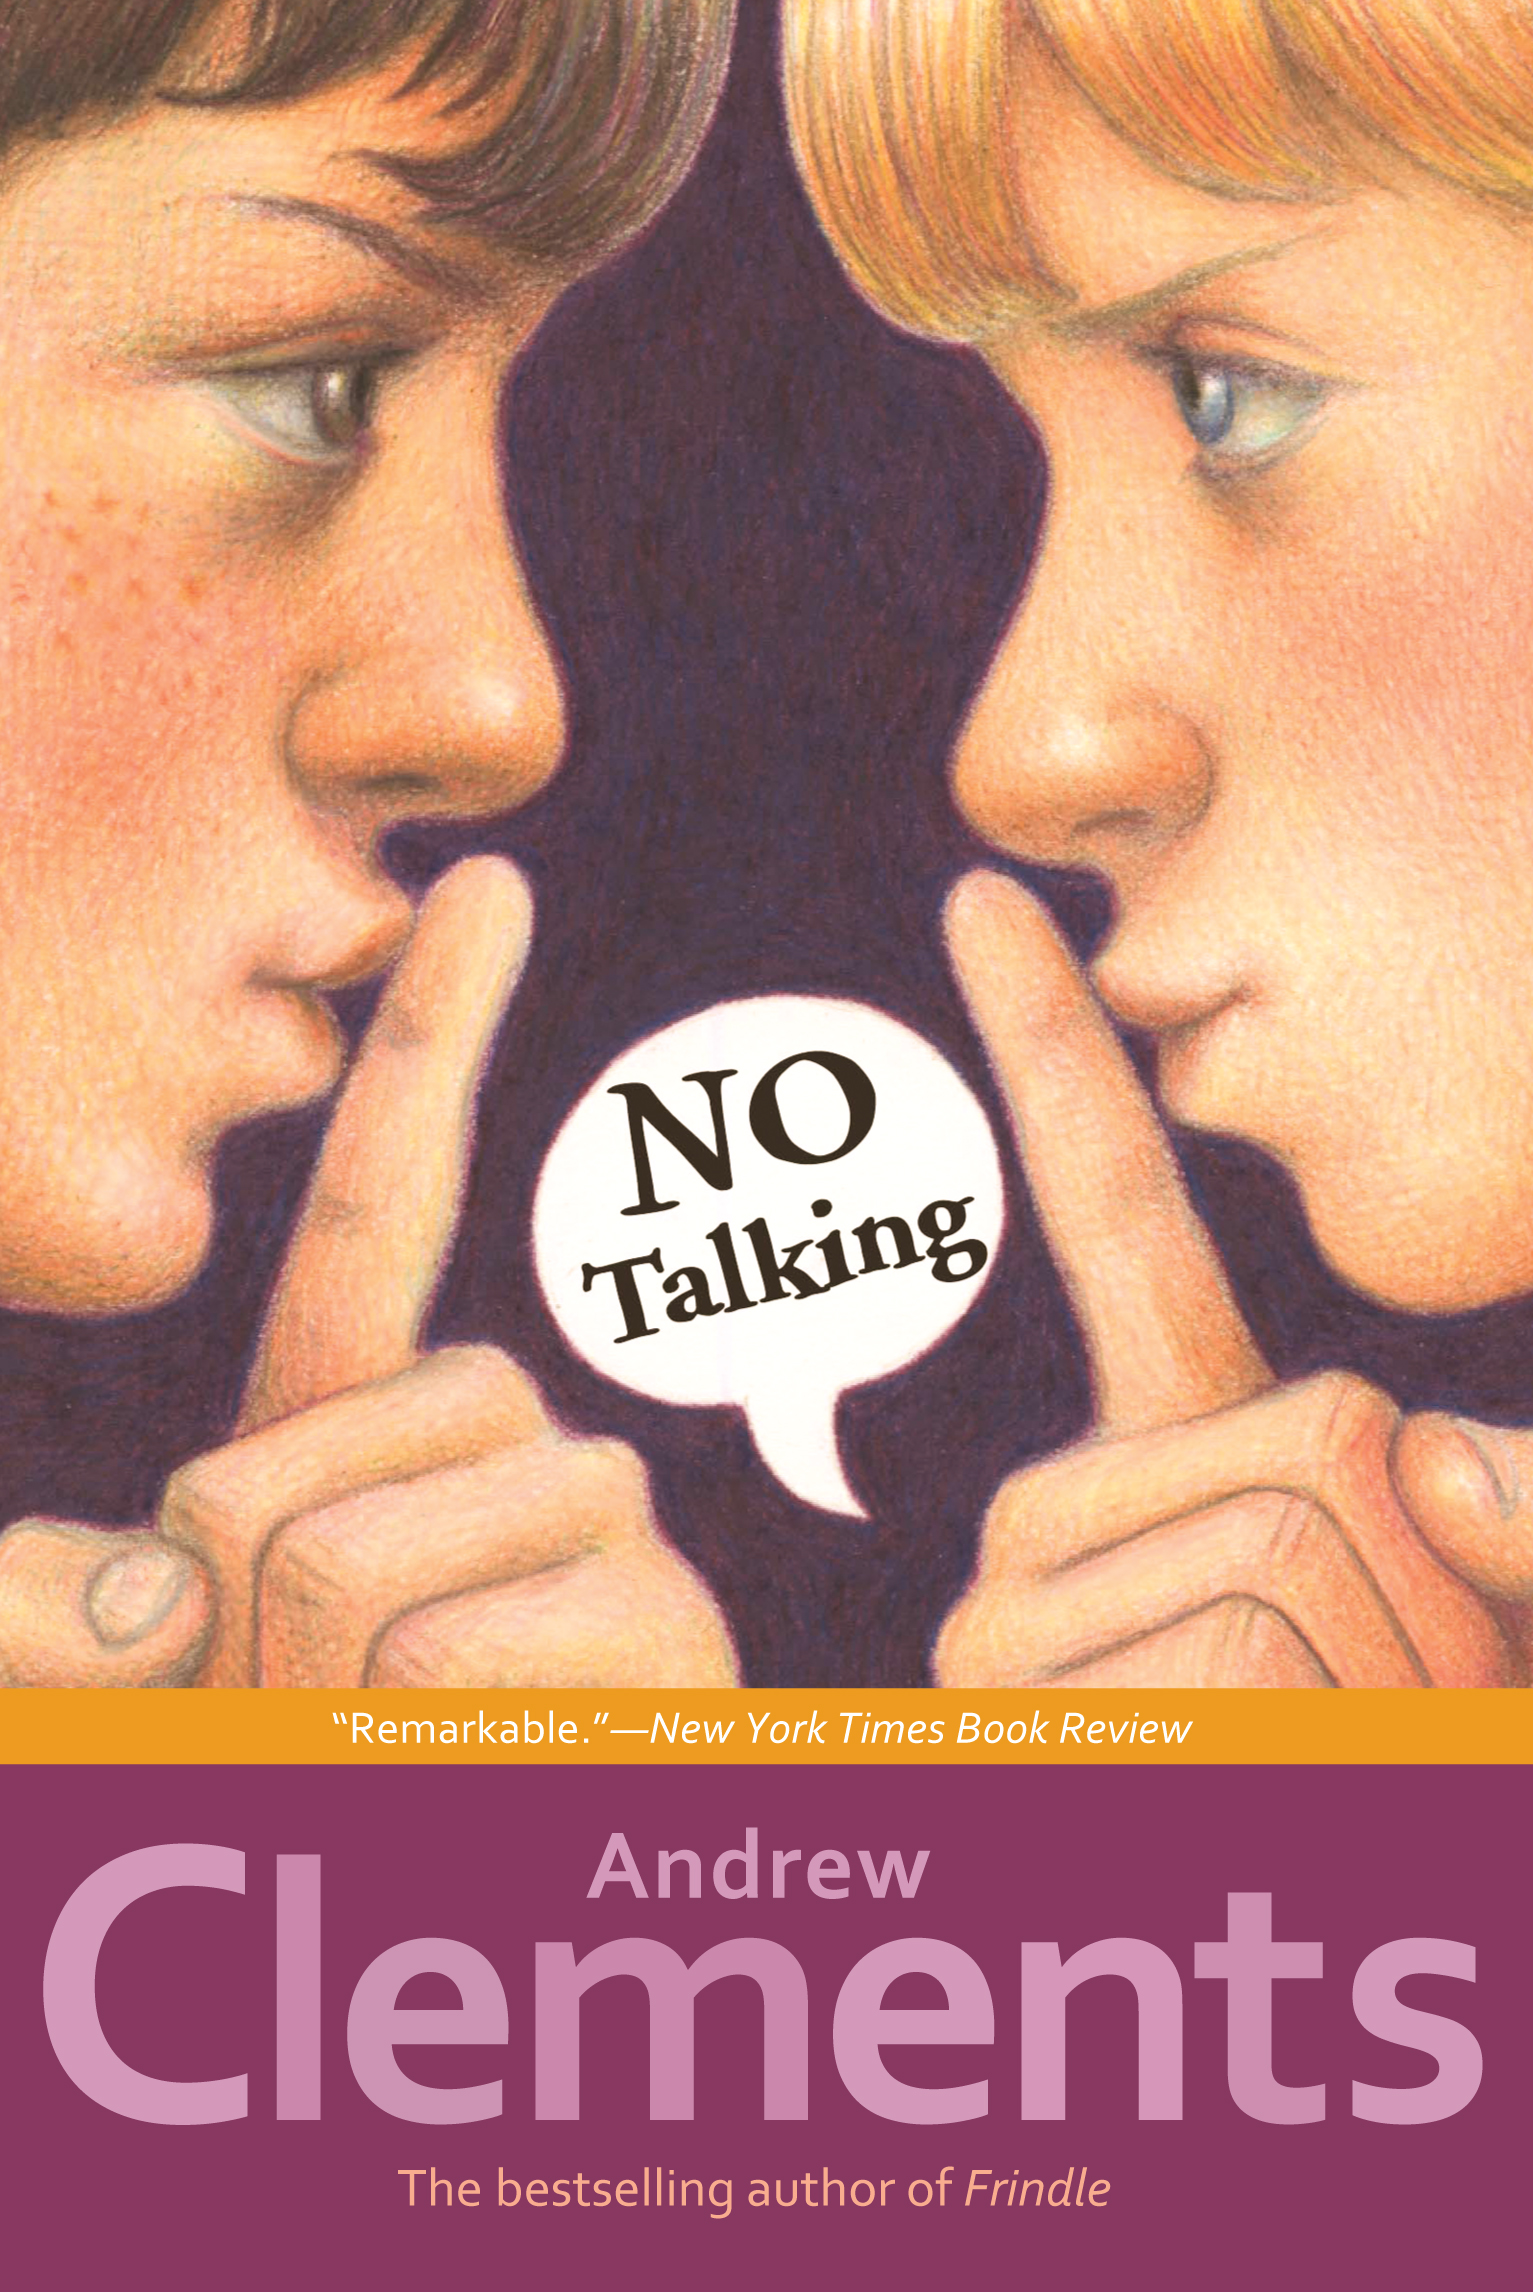 No talking book by andrew clements mark elliott official cvr9781416909842 9781416909842 hr publicscrutiny Gallery